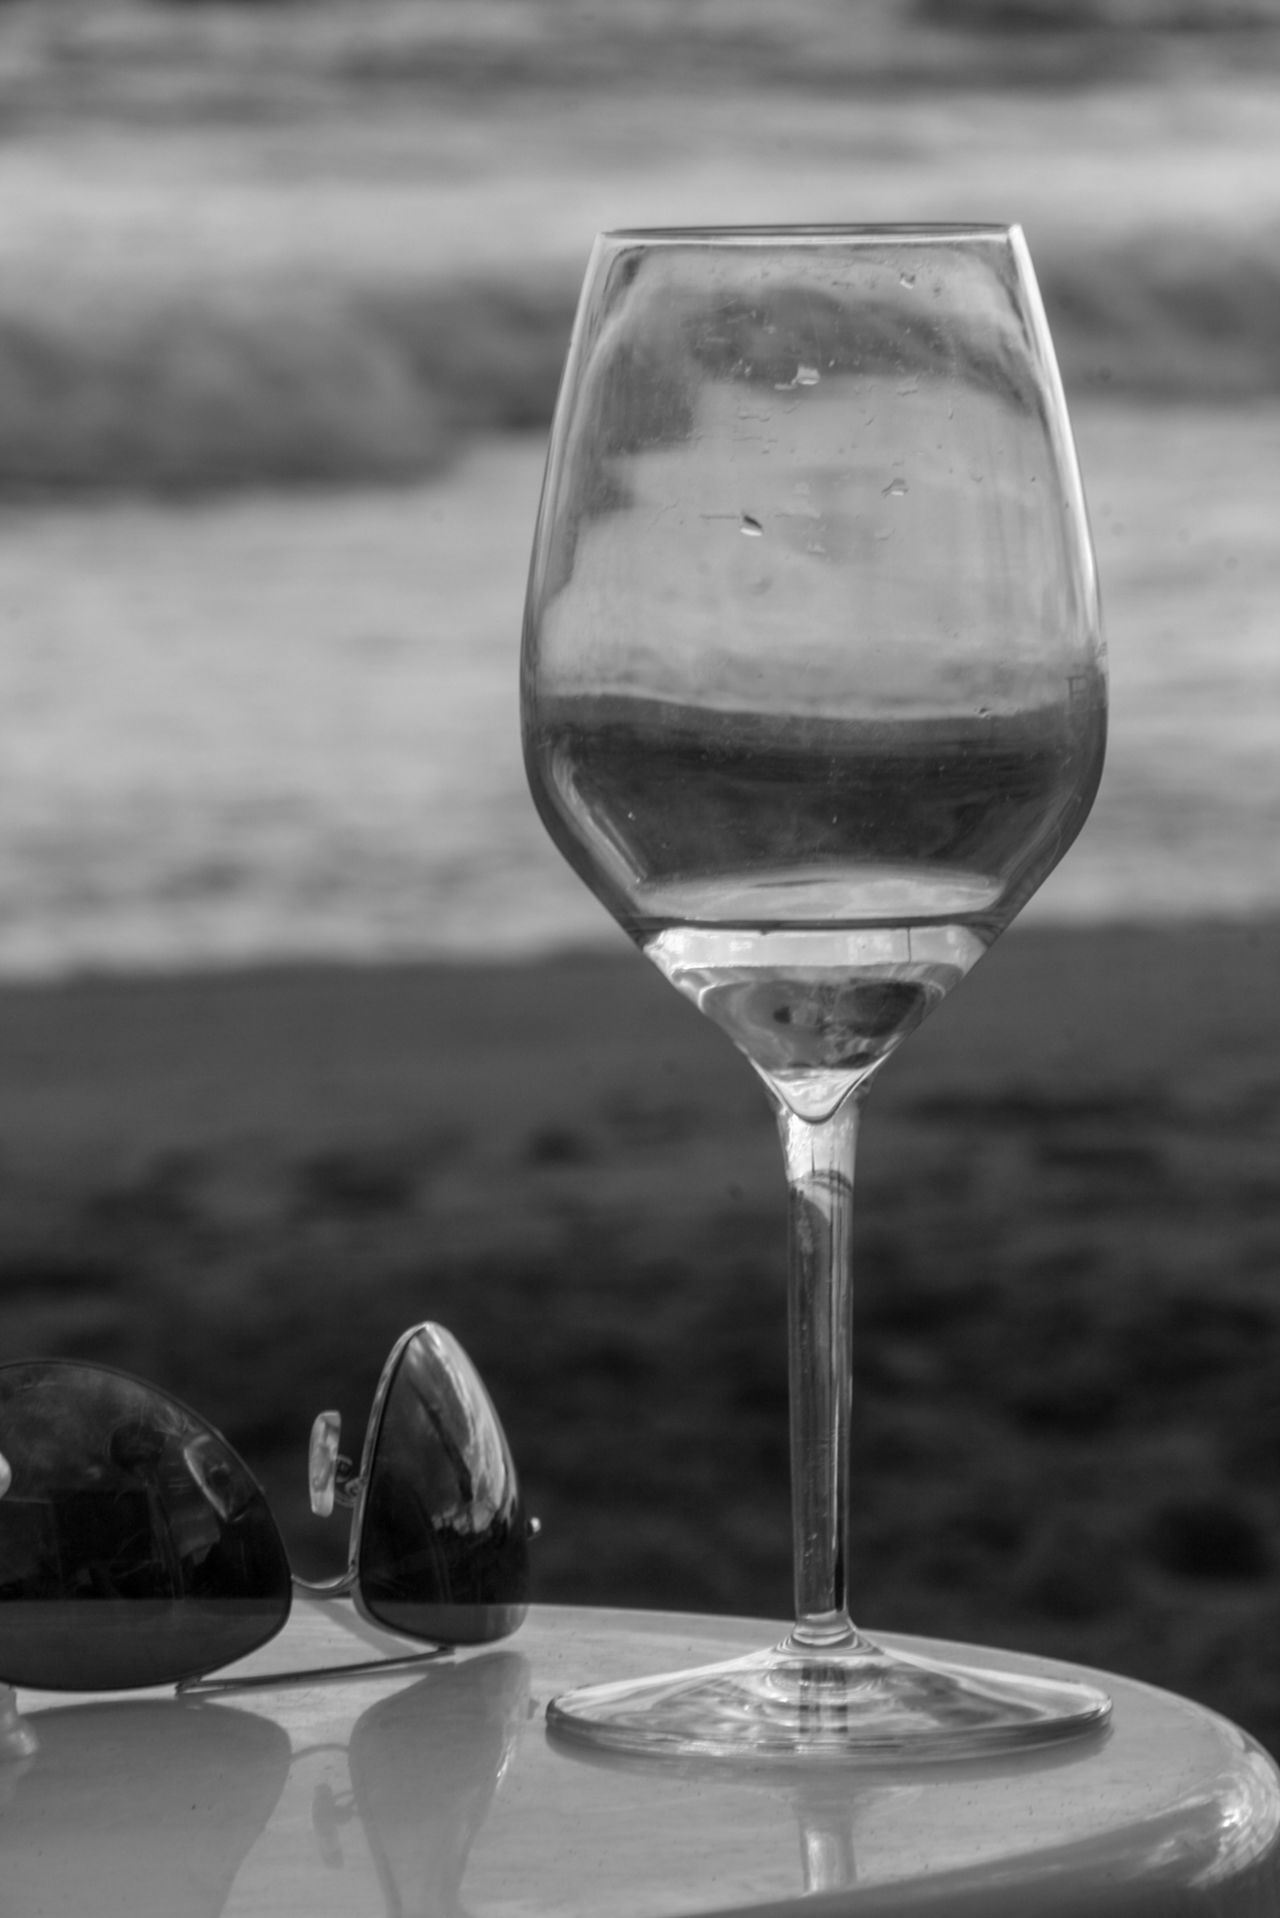 Alcohol Aperitif Beach Close-up Drink Drinking Glass Drinking Wine Focus On Foreground Nature No People Ocean Outdoors Sea Sunglasses Table Water Wine Wine At The Beach Wine Moments Wineglass Wineglasses Wine Not